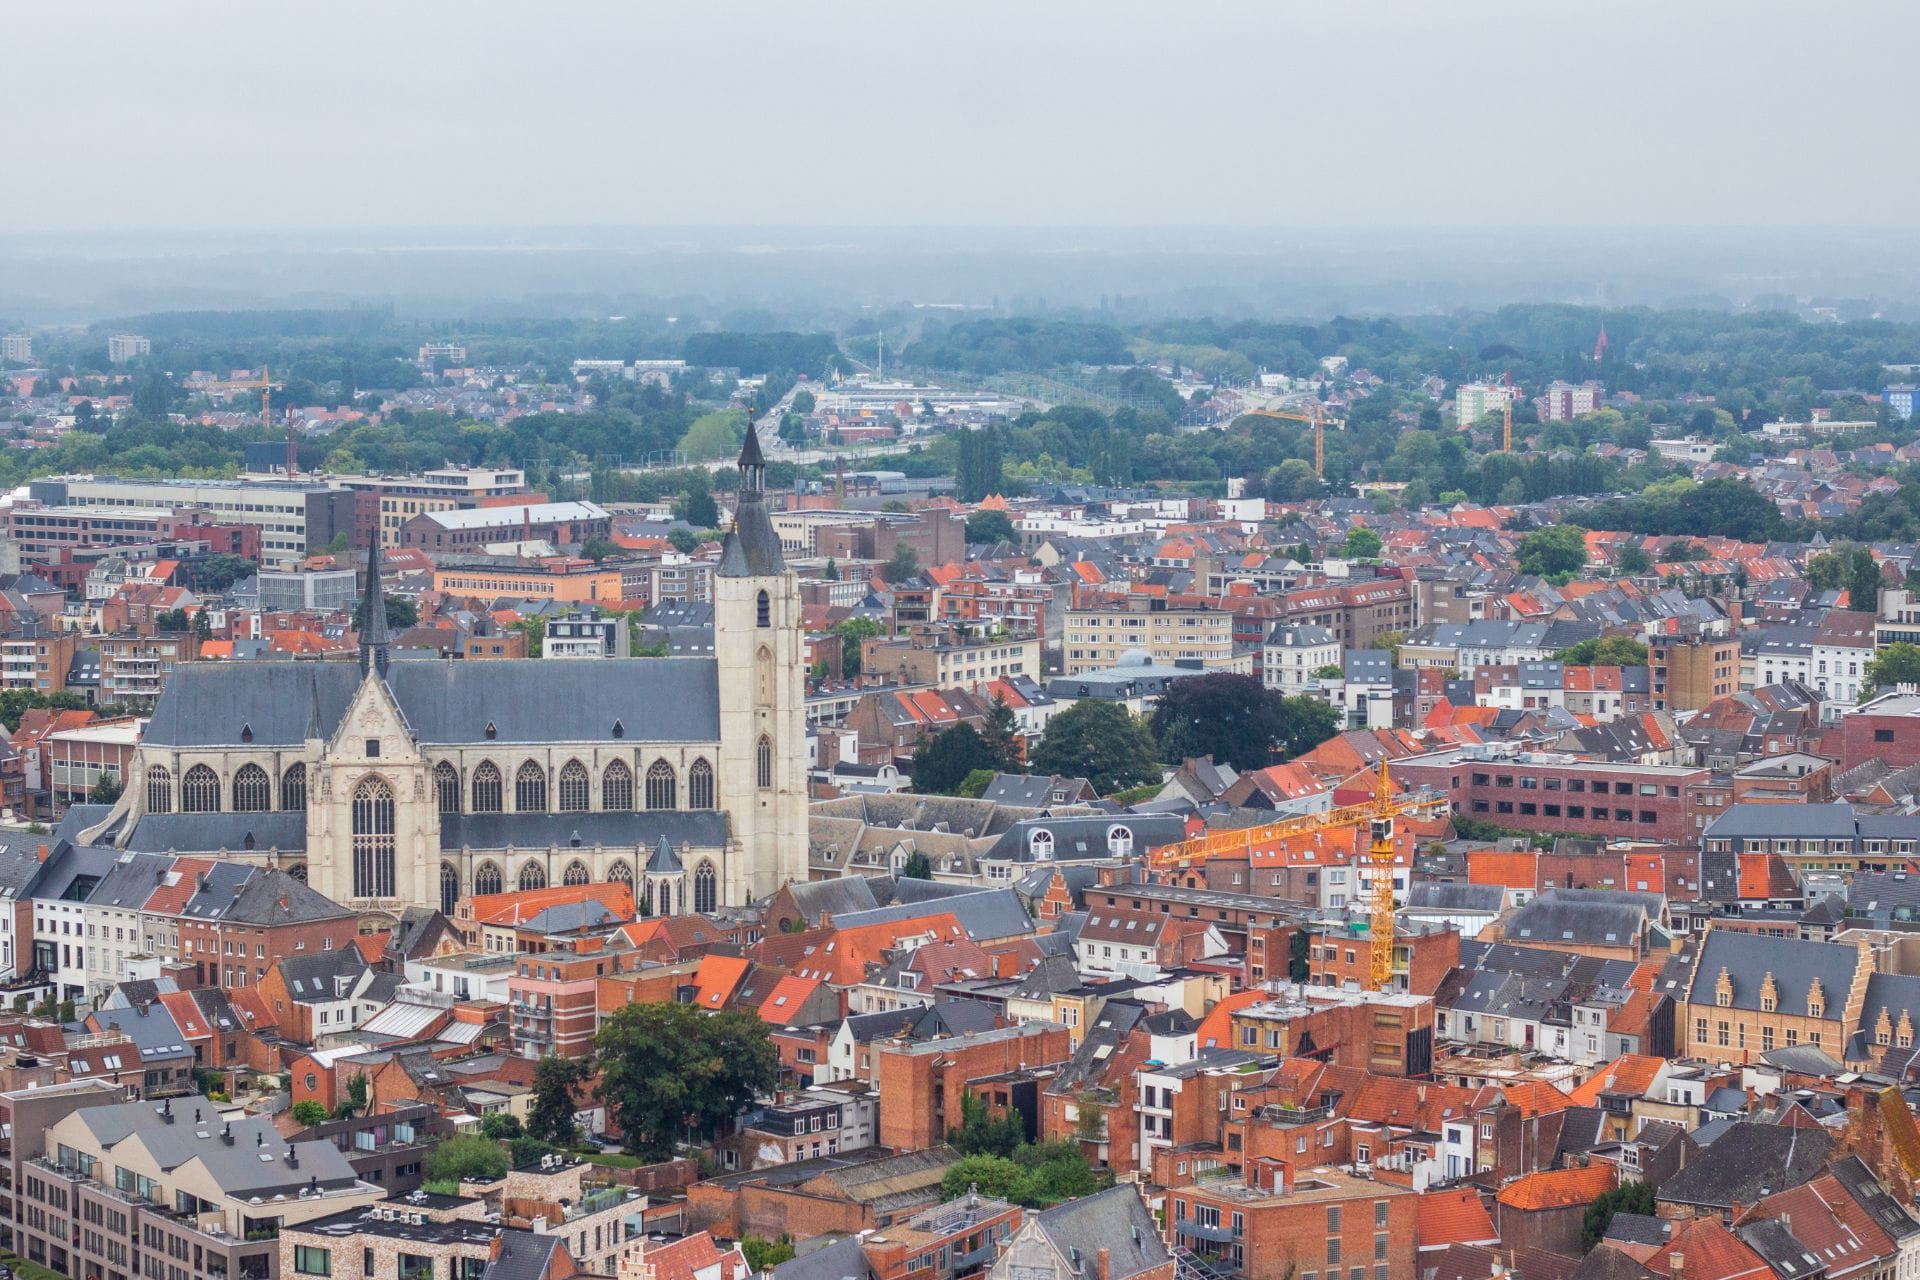 views-of-a-european-city-a-church-and-orange-rooftops-and-countryside-in-distance-st-rumbolds-tower-cathedral-skywalk-things-to-do-in-mechelen-belgium